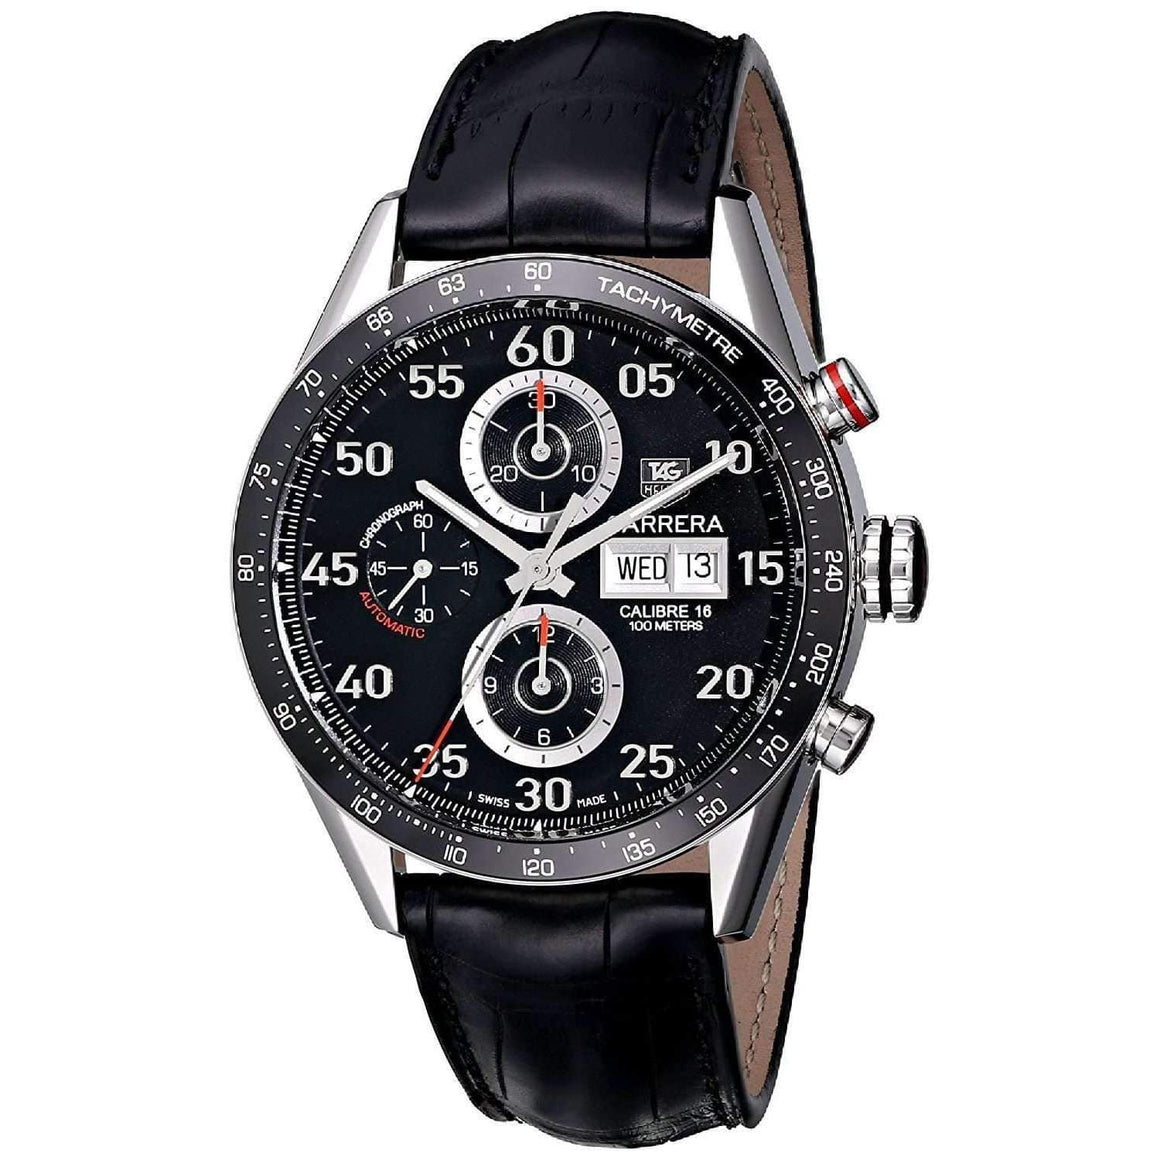 TAG HEUER CARRERA AUTOMATIC DAY-DATE MEN WATCH CV2A10.FC6235 - ROOK JAPAN